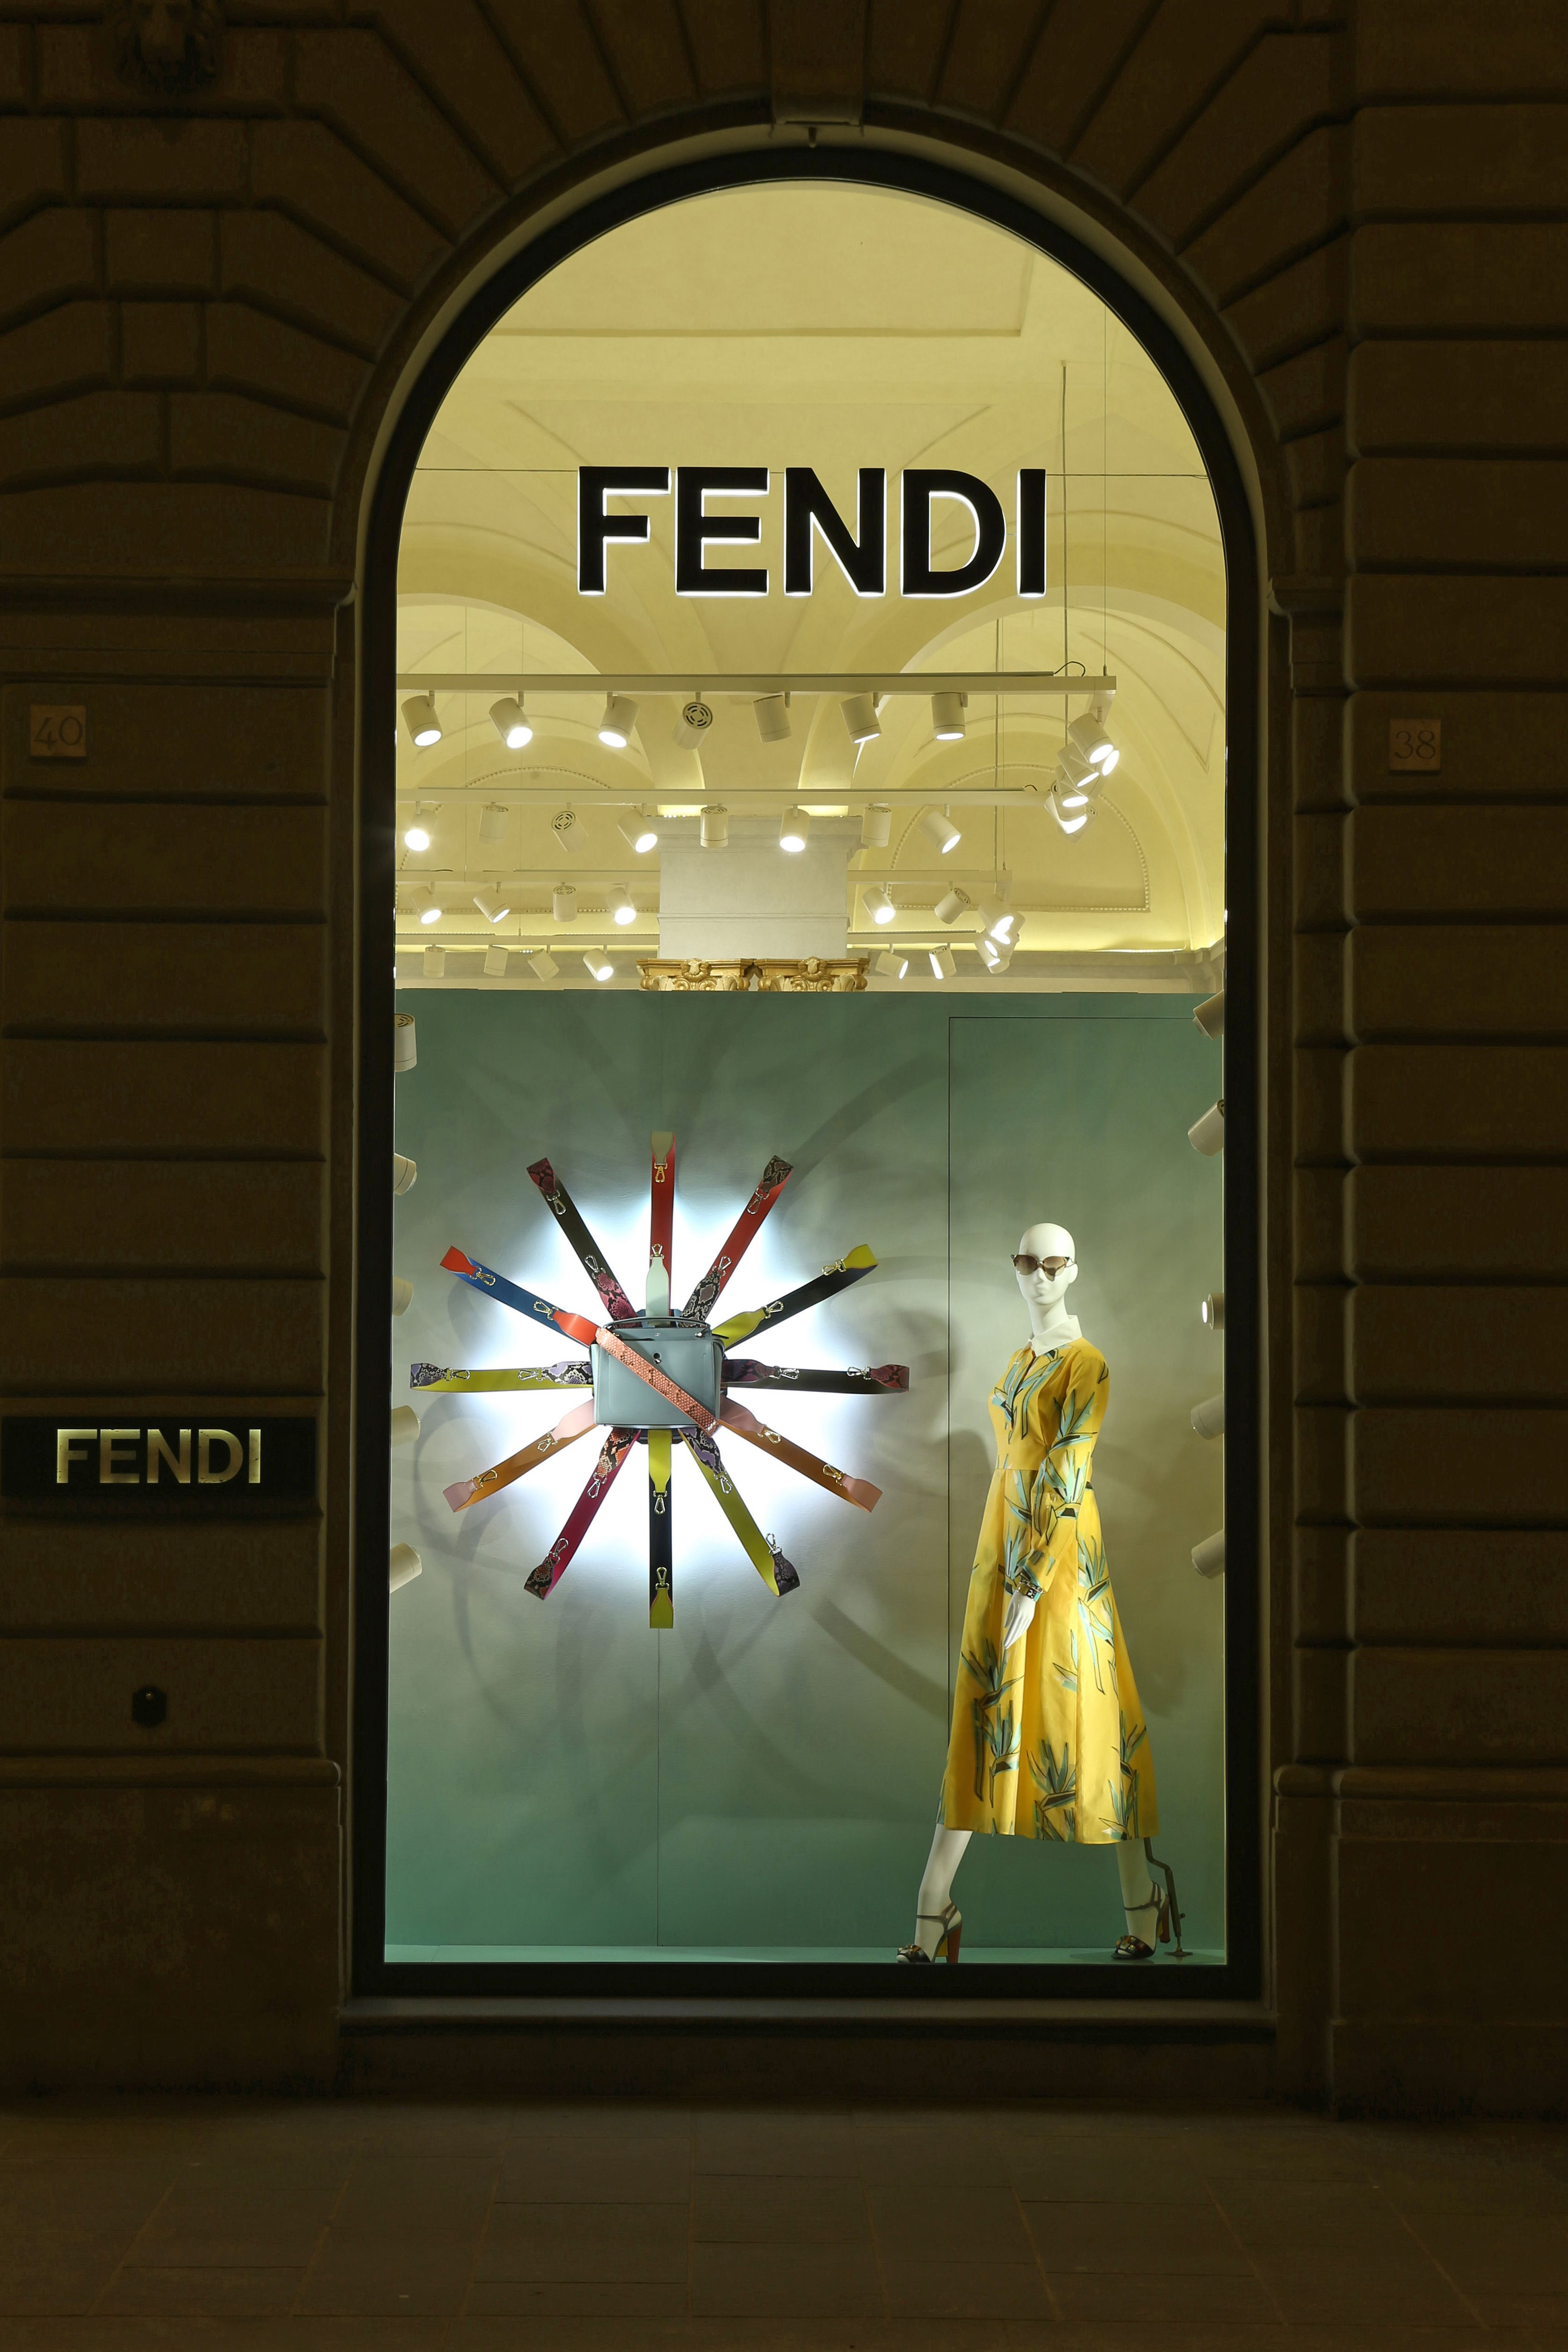 The Fendi Strap You Accessory Collection Displayed In The New Boutique Window Theme In Florence